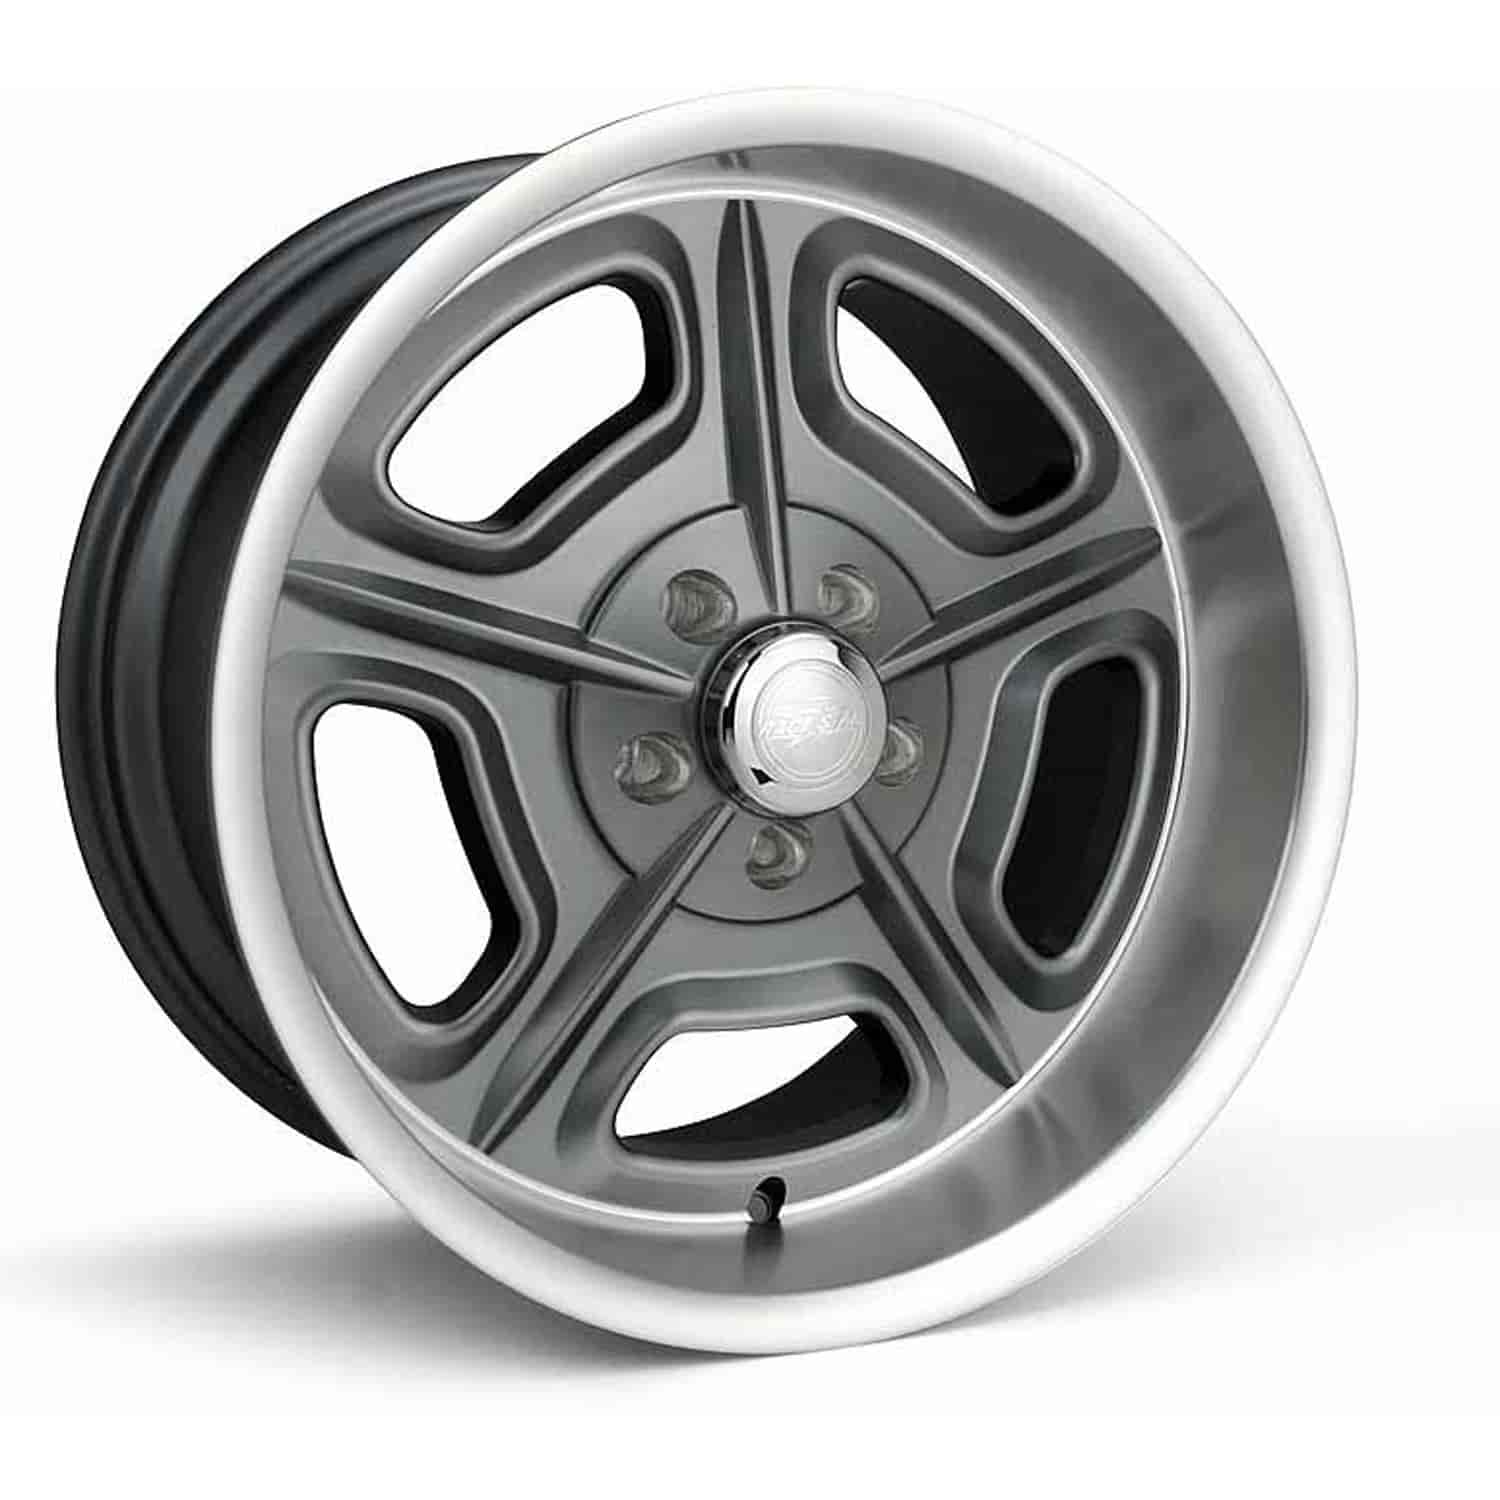 Race Star Wheels 32-510948GP